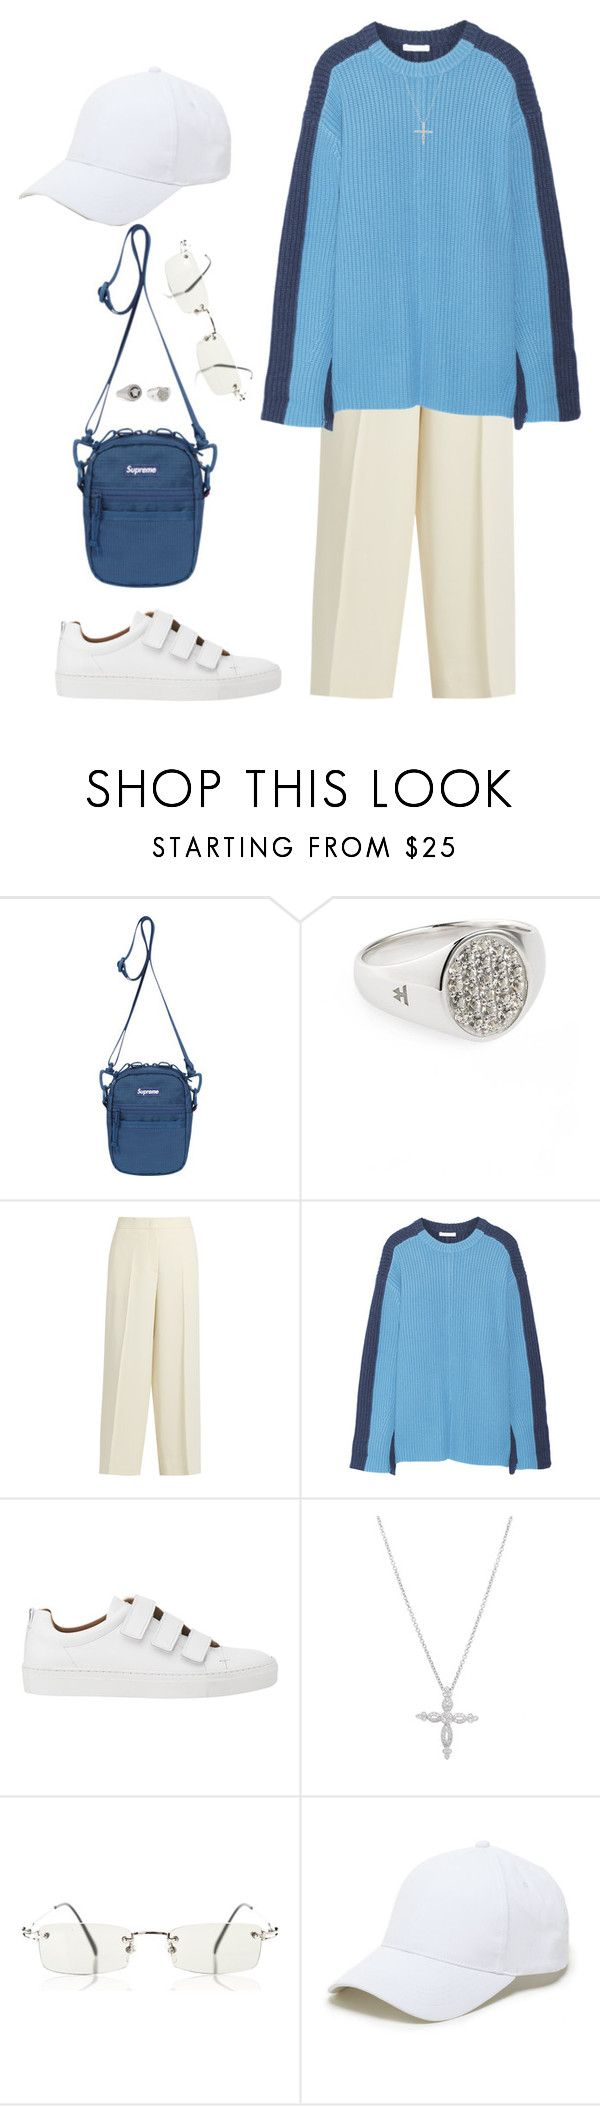 """Untitled #246"" by uraveragestyle ❤ liked on Polyvore featuring Tom Wood, Jil Sander, Chloé, Whistles, Jean-Paul Gaultier and Sole Society"